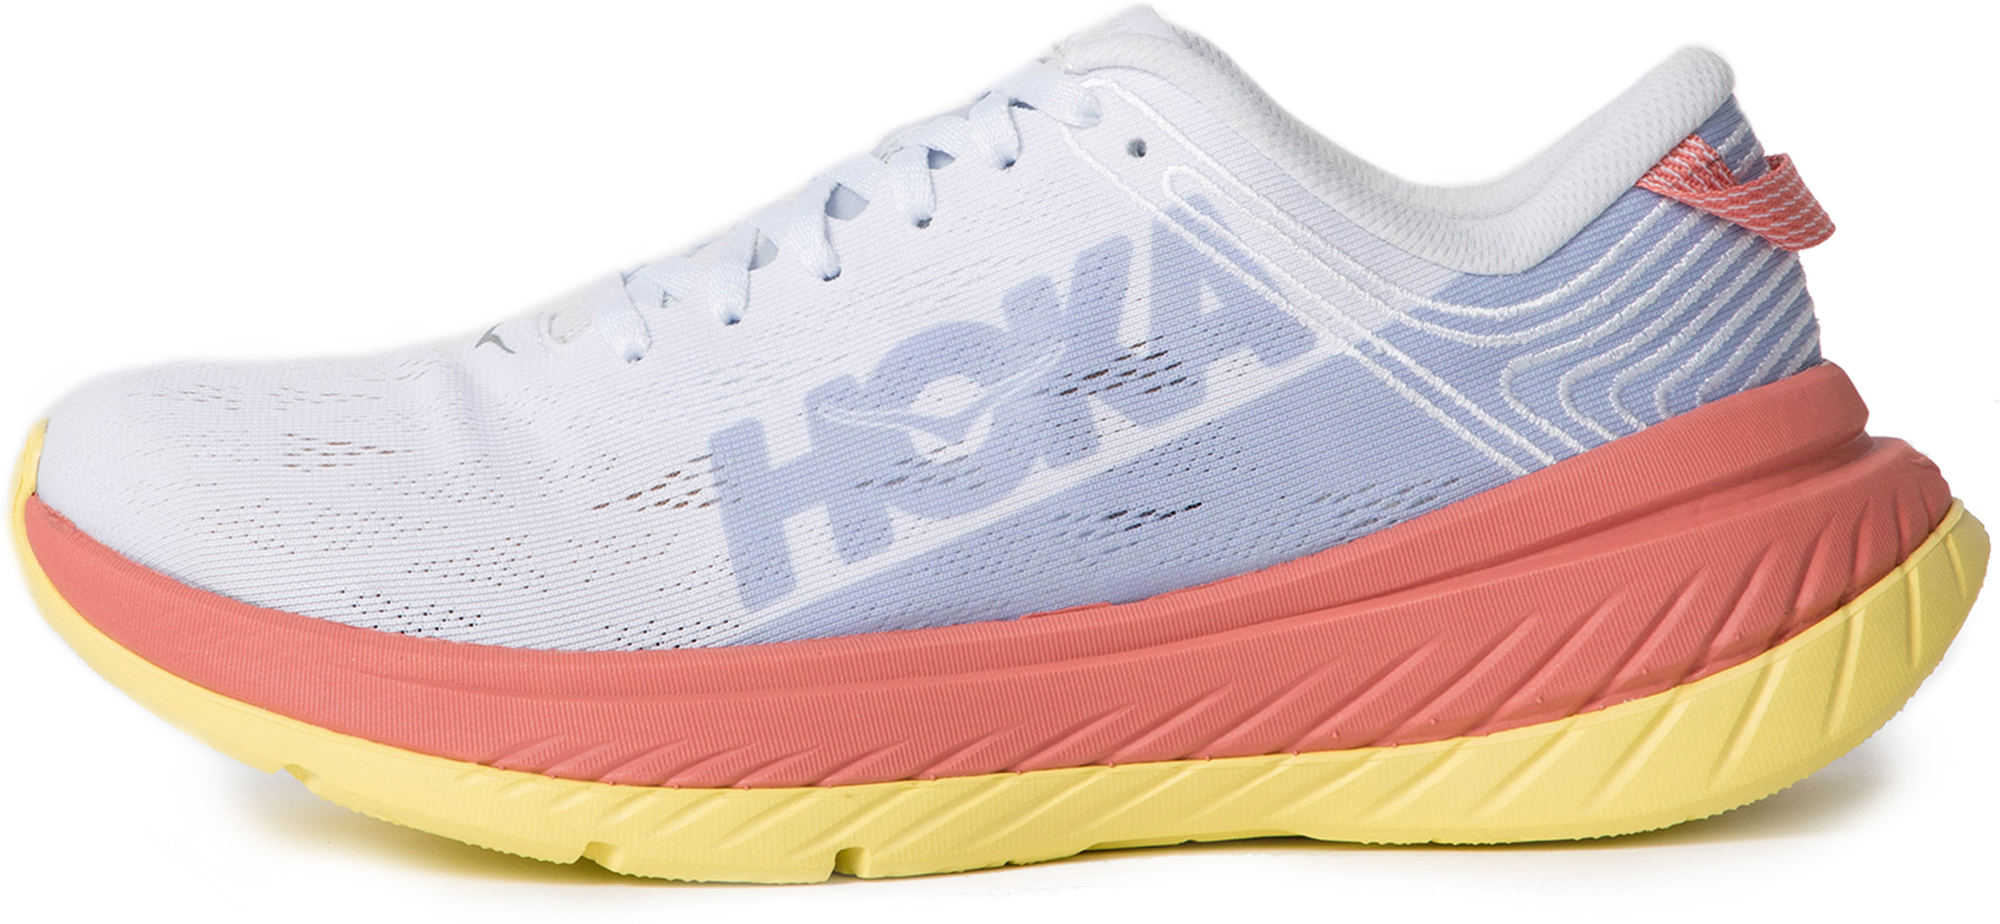 HOKA ONE ONE Кроссовки женские HOKA ONE ONE Carbon, размер 40 hoka one one women s w conquest running shoe